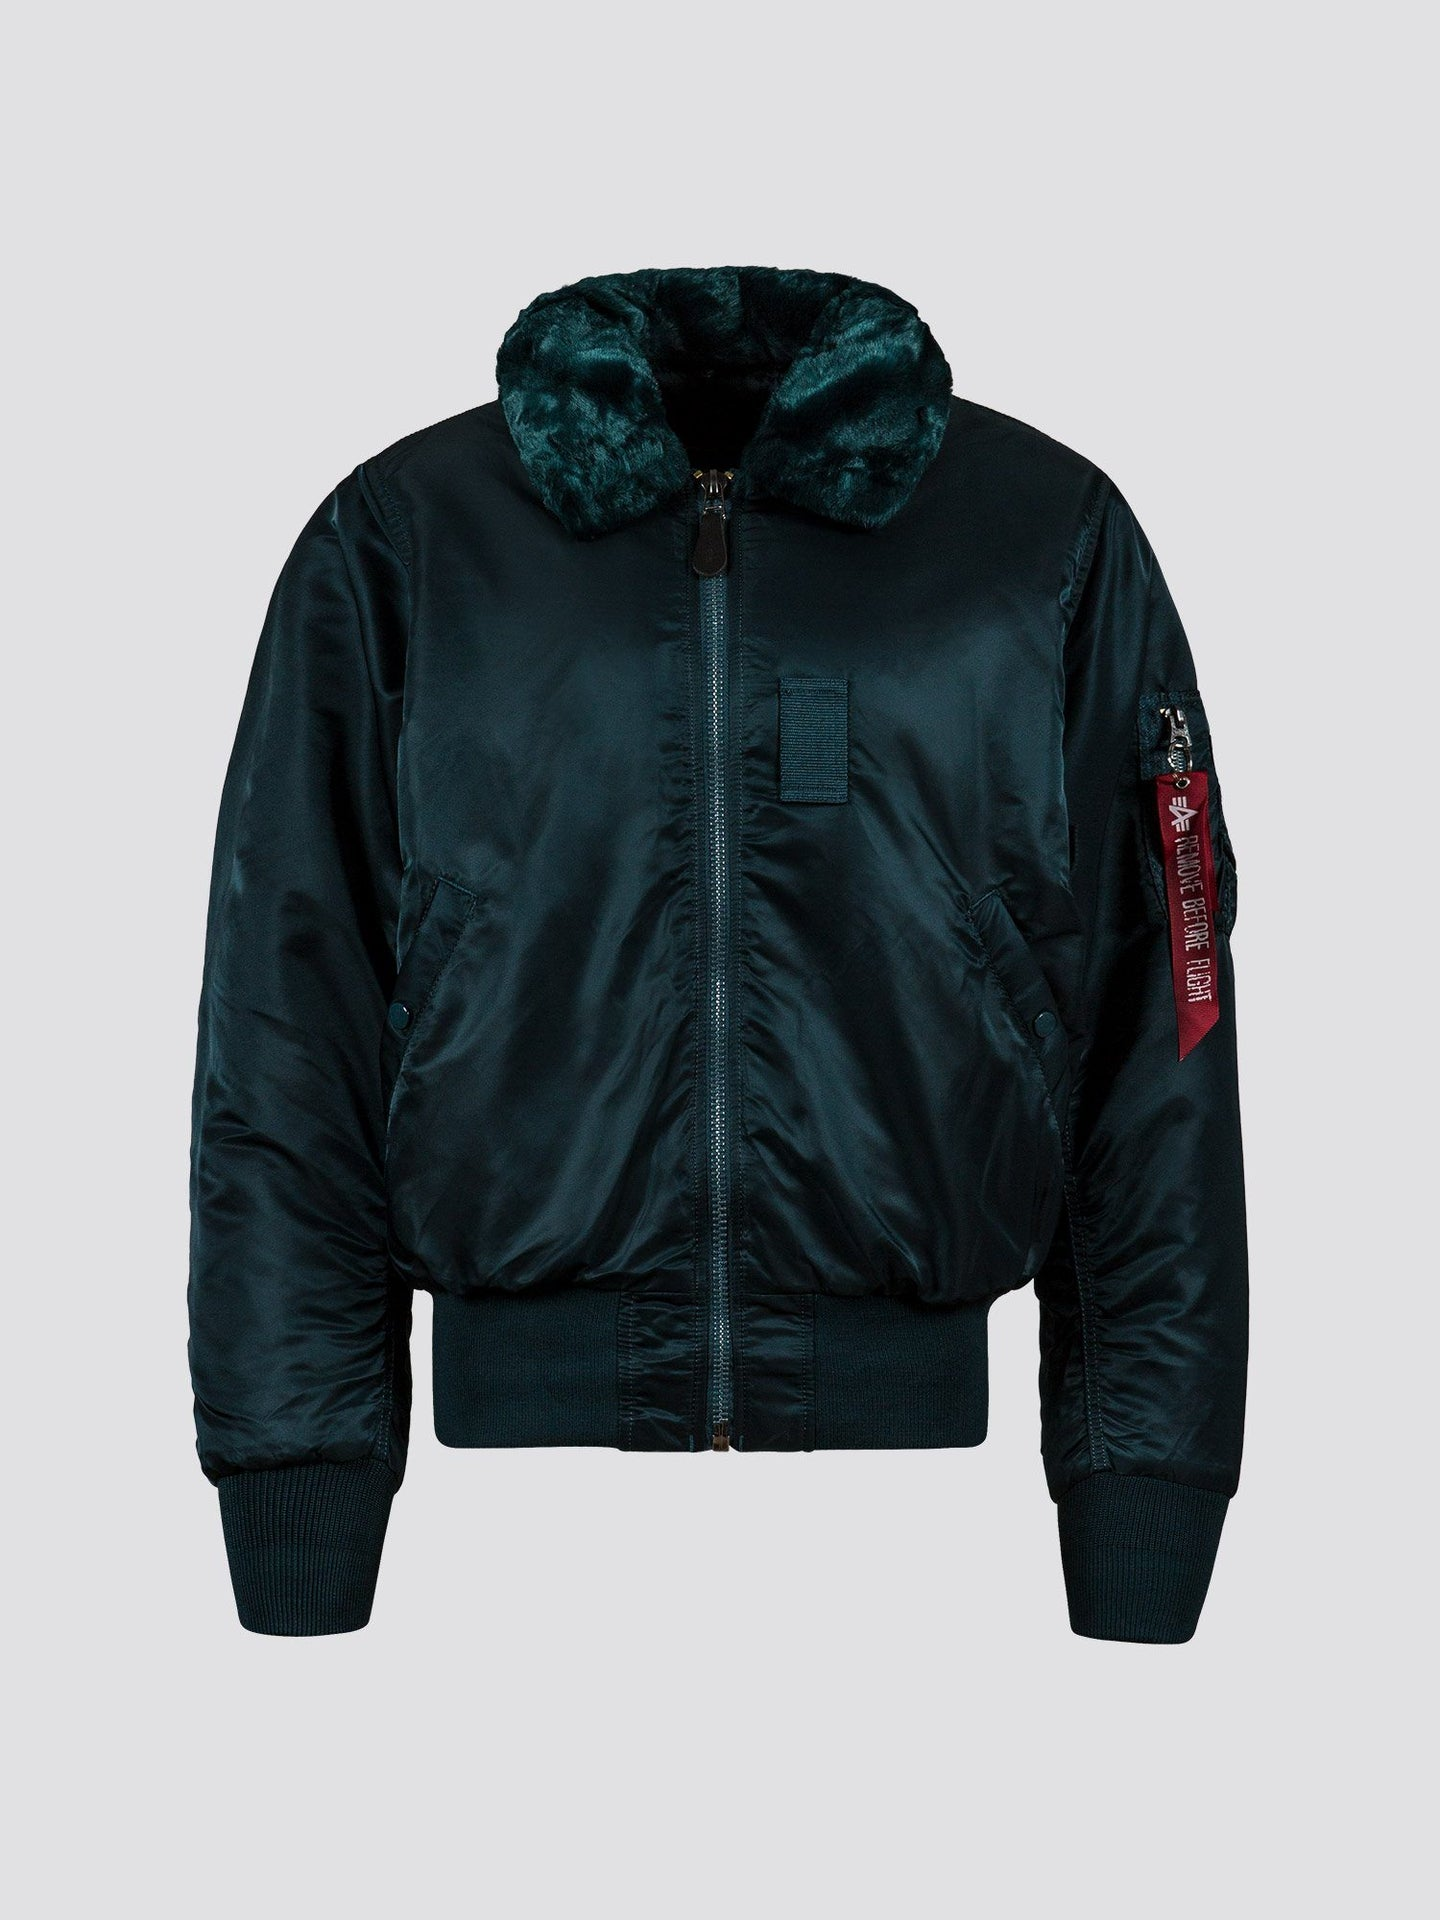 B-15 BOMBER JACKET (SEASONAL) OUTERWEAR Alpha Industries NAVY XS